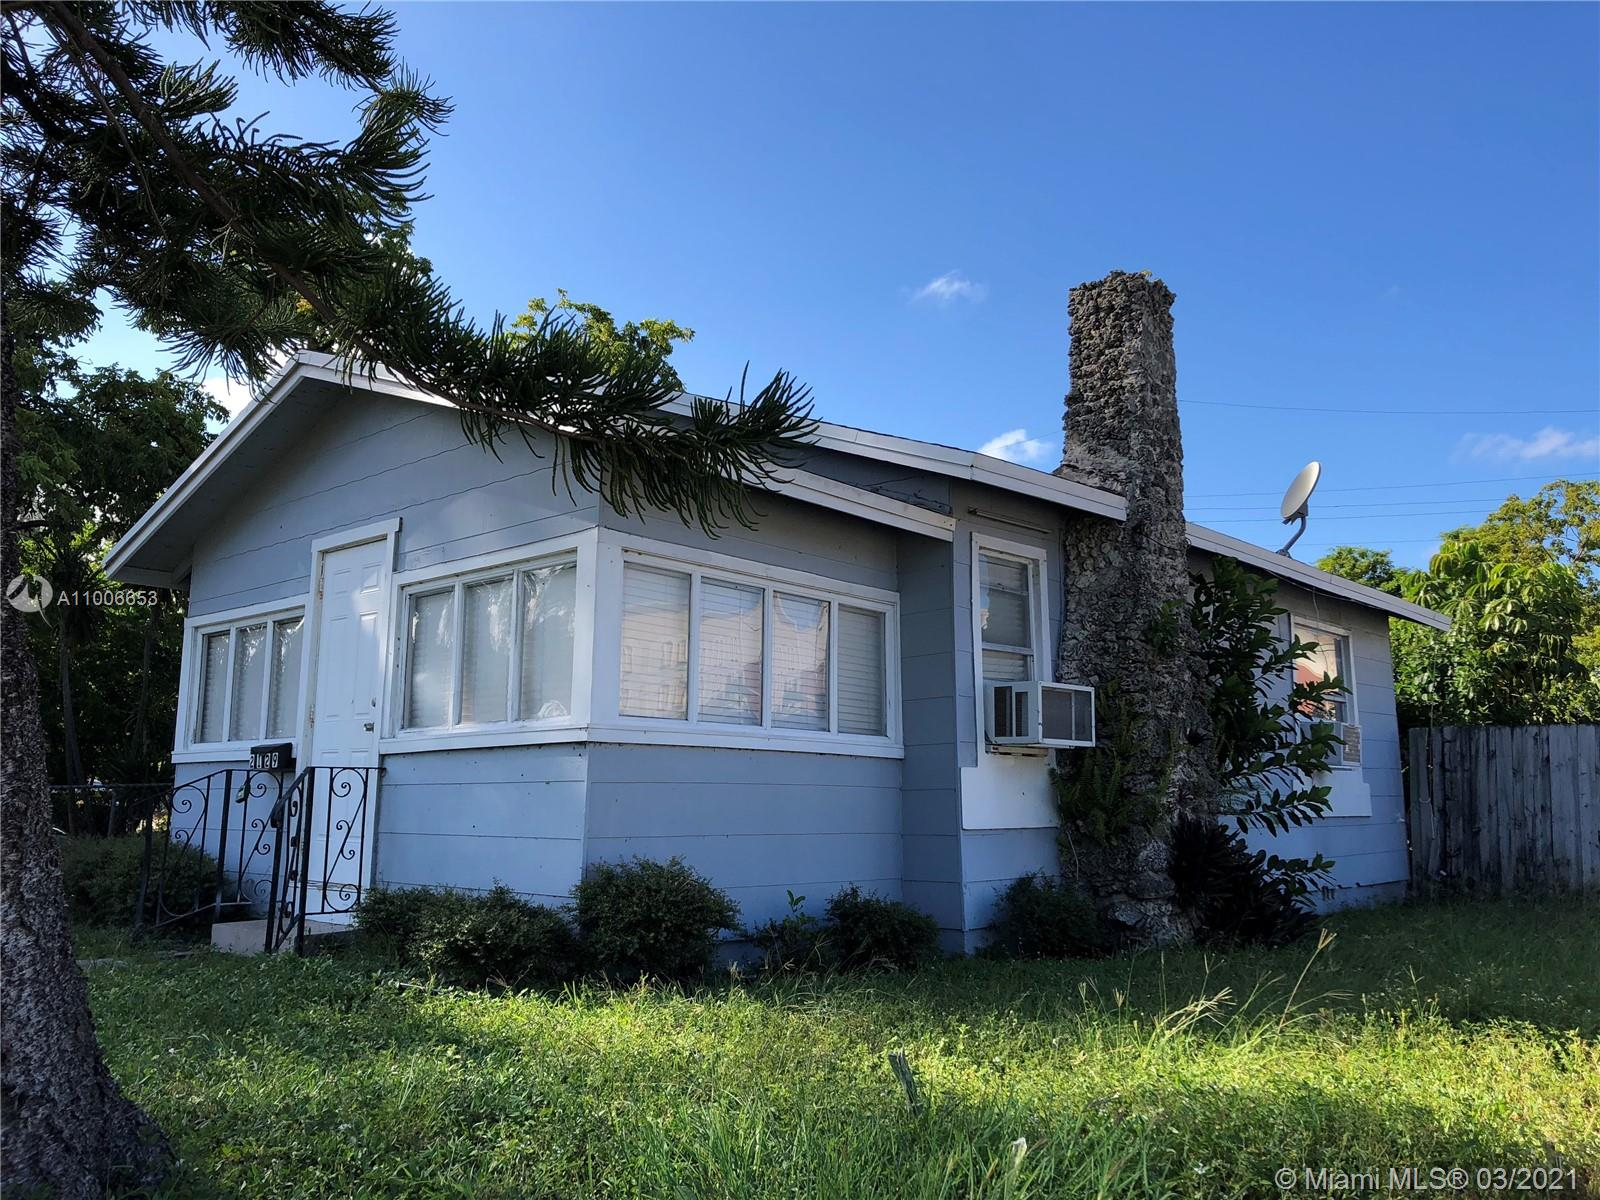 Hollywood Little Ranches - 2129 Taylor St, Hollywood, FL 33020